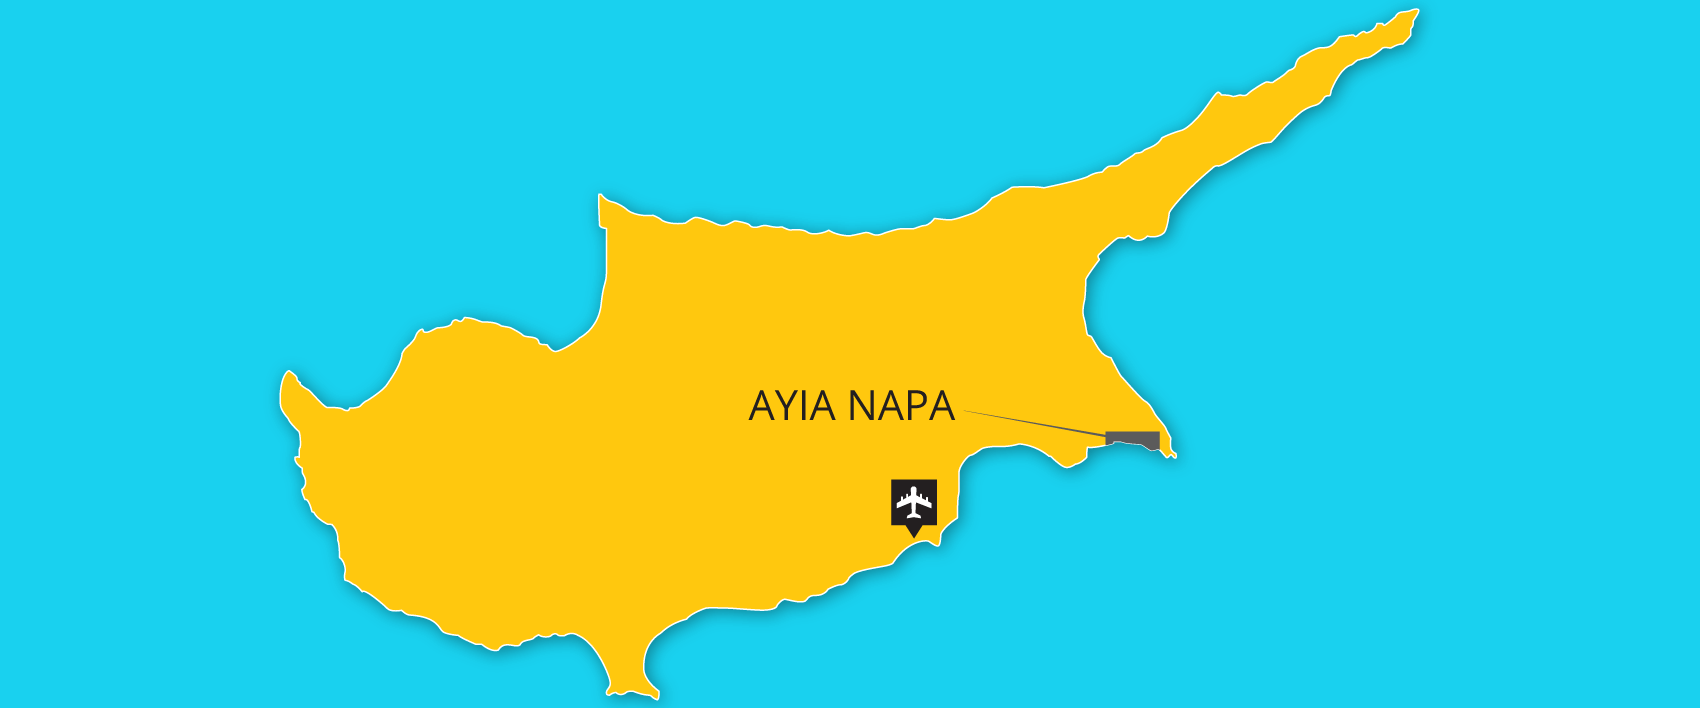 Home Airport Transfers Cyprus